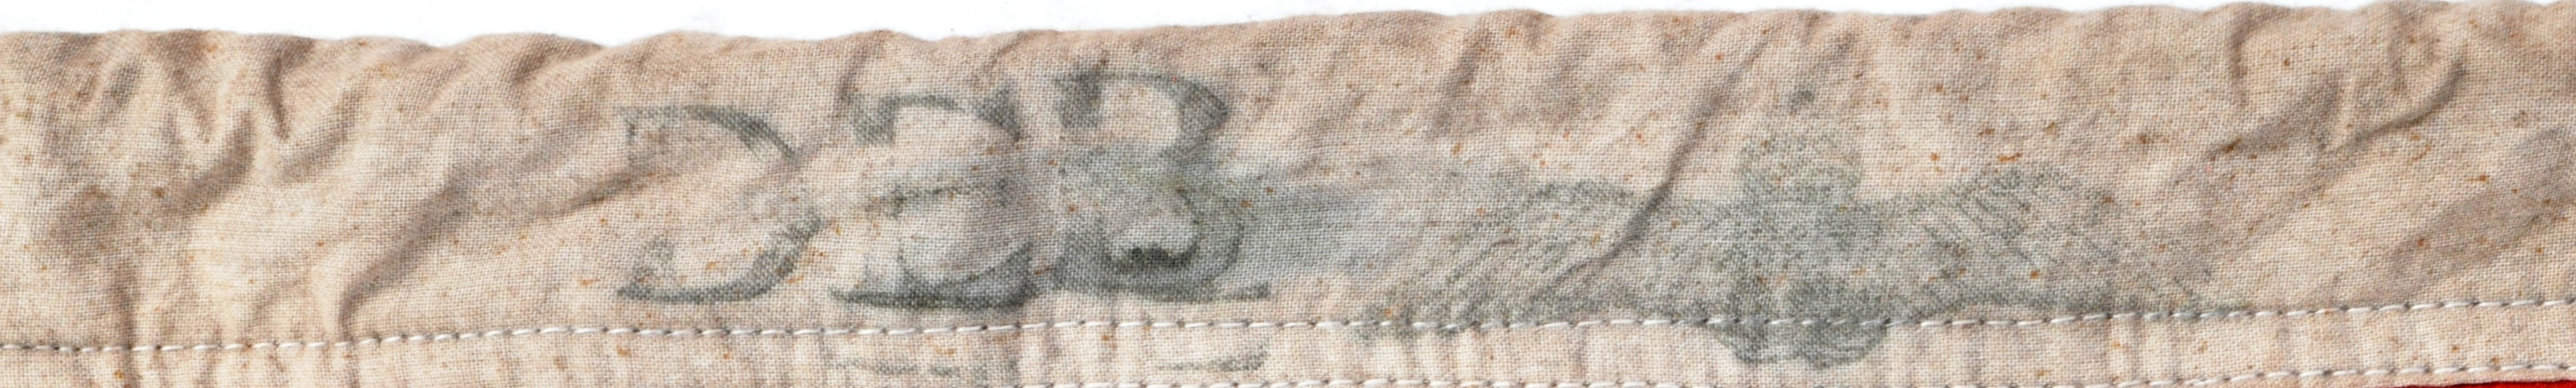 WWII SECOND WORLD WAR TYPE RAF AIRFIELD FLAG - DEBDEN - Image 6 of 8